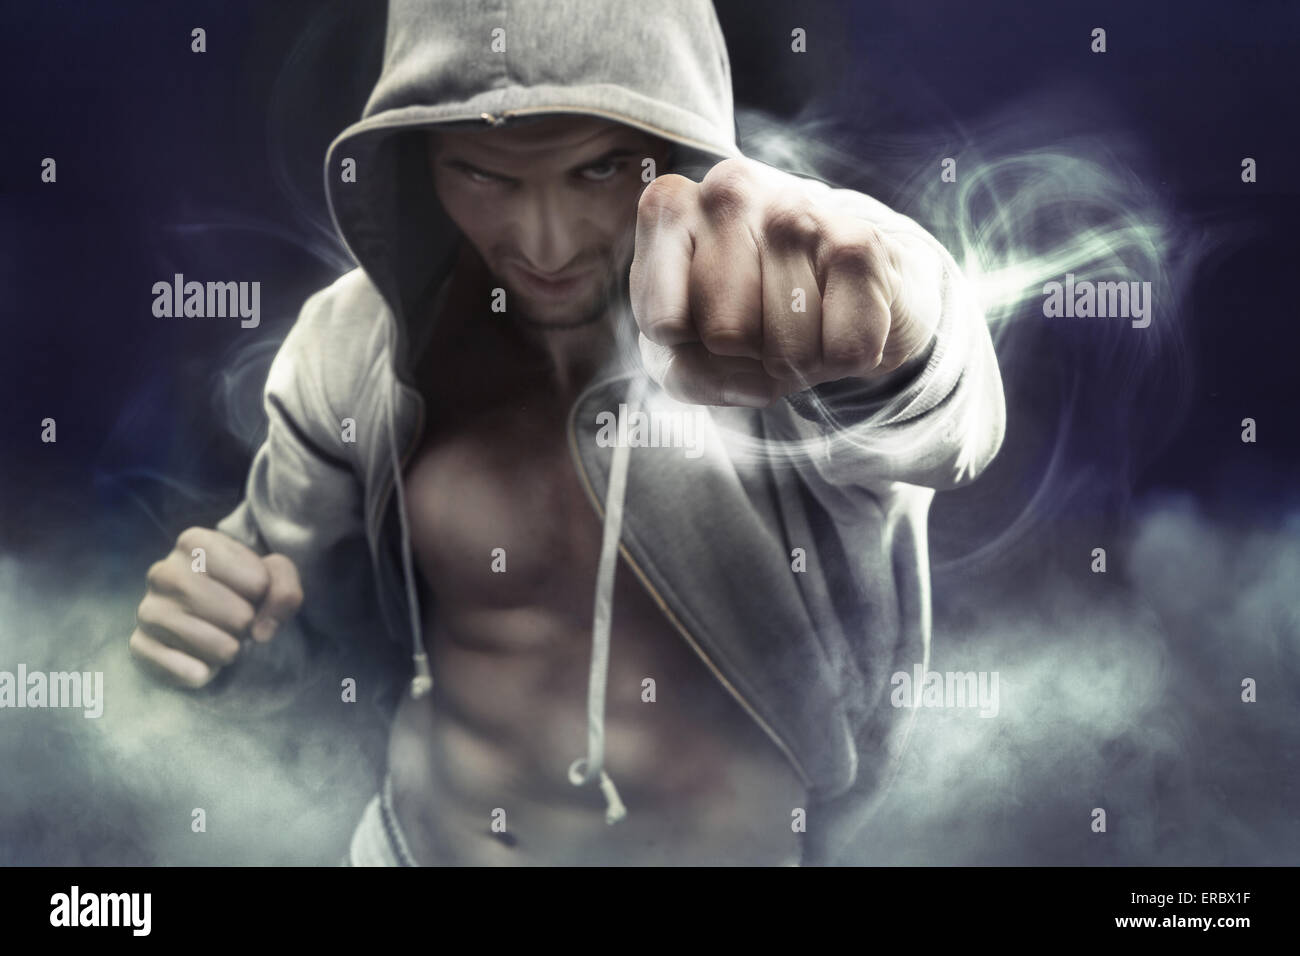 Hooded muscular boxer punching an enemy - Stock Image